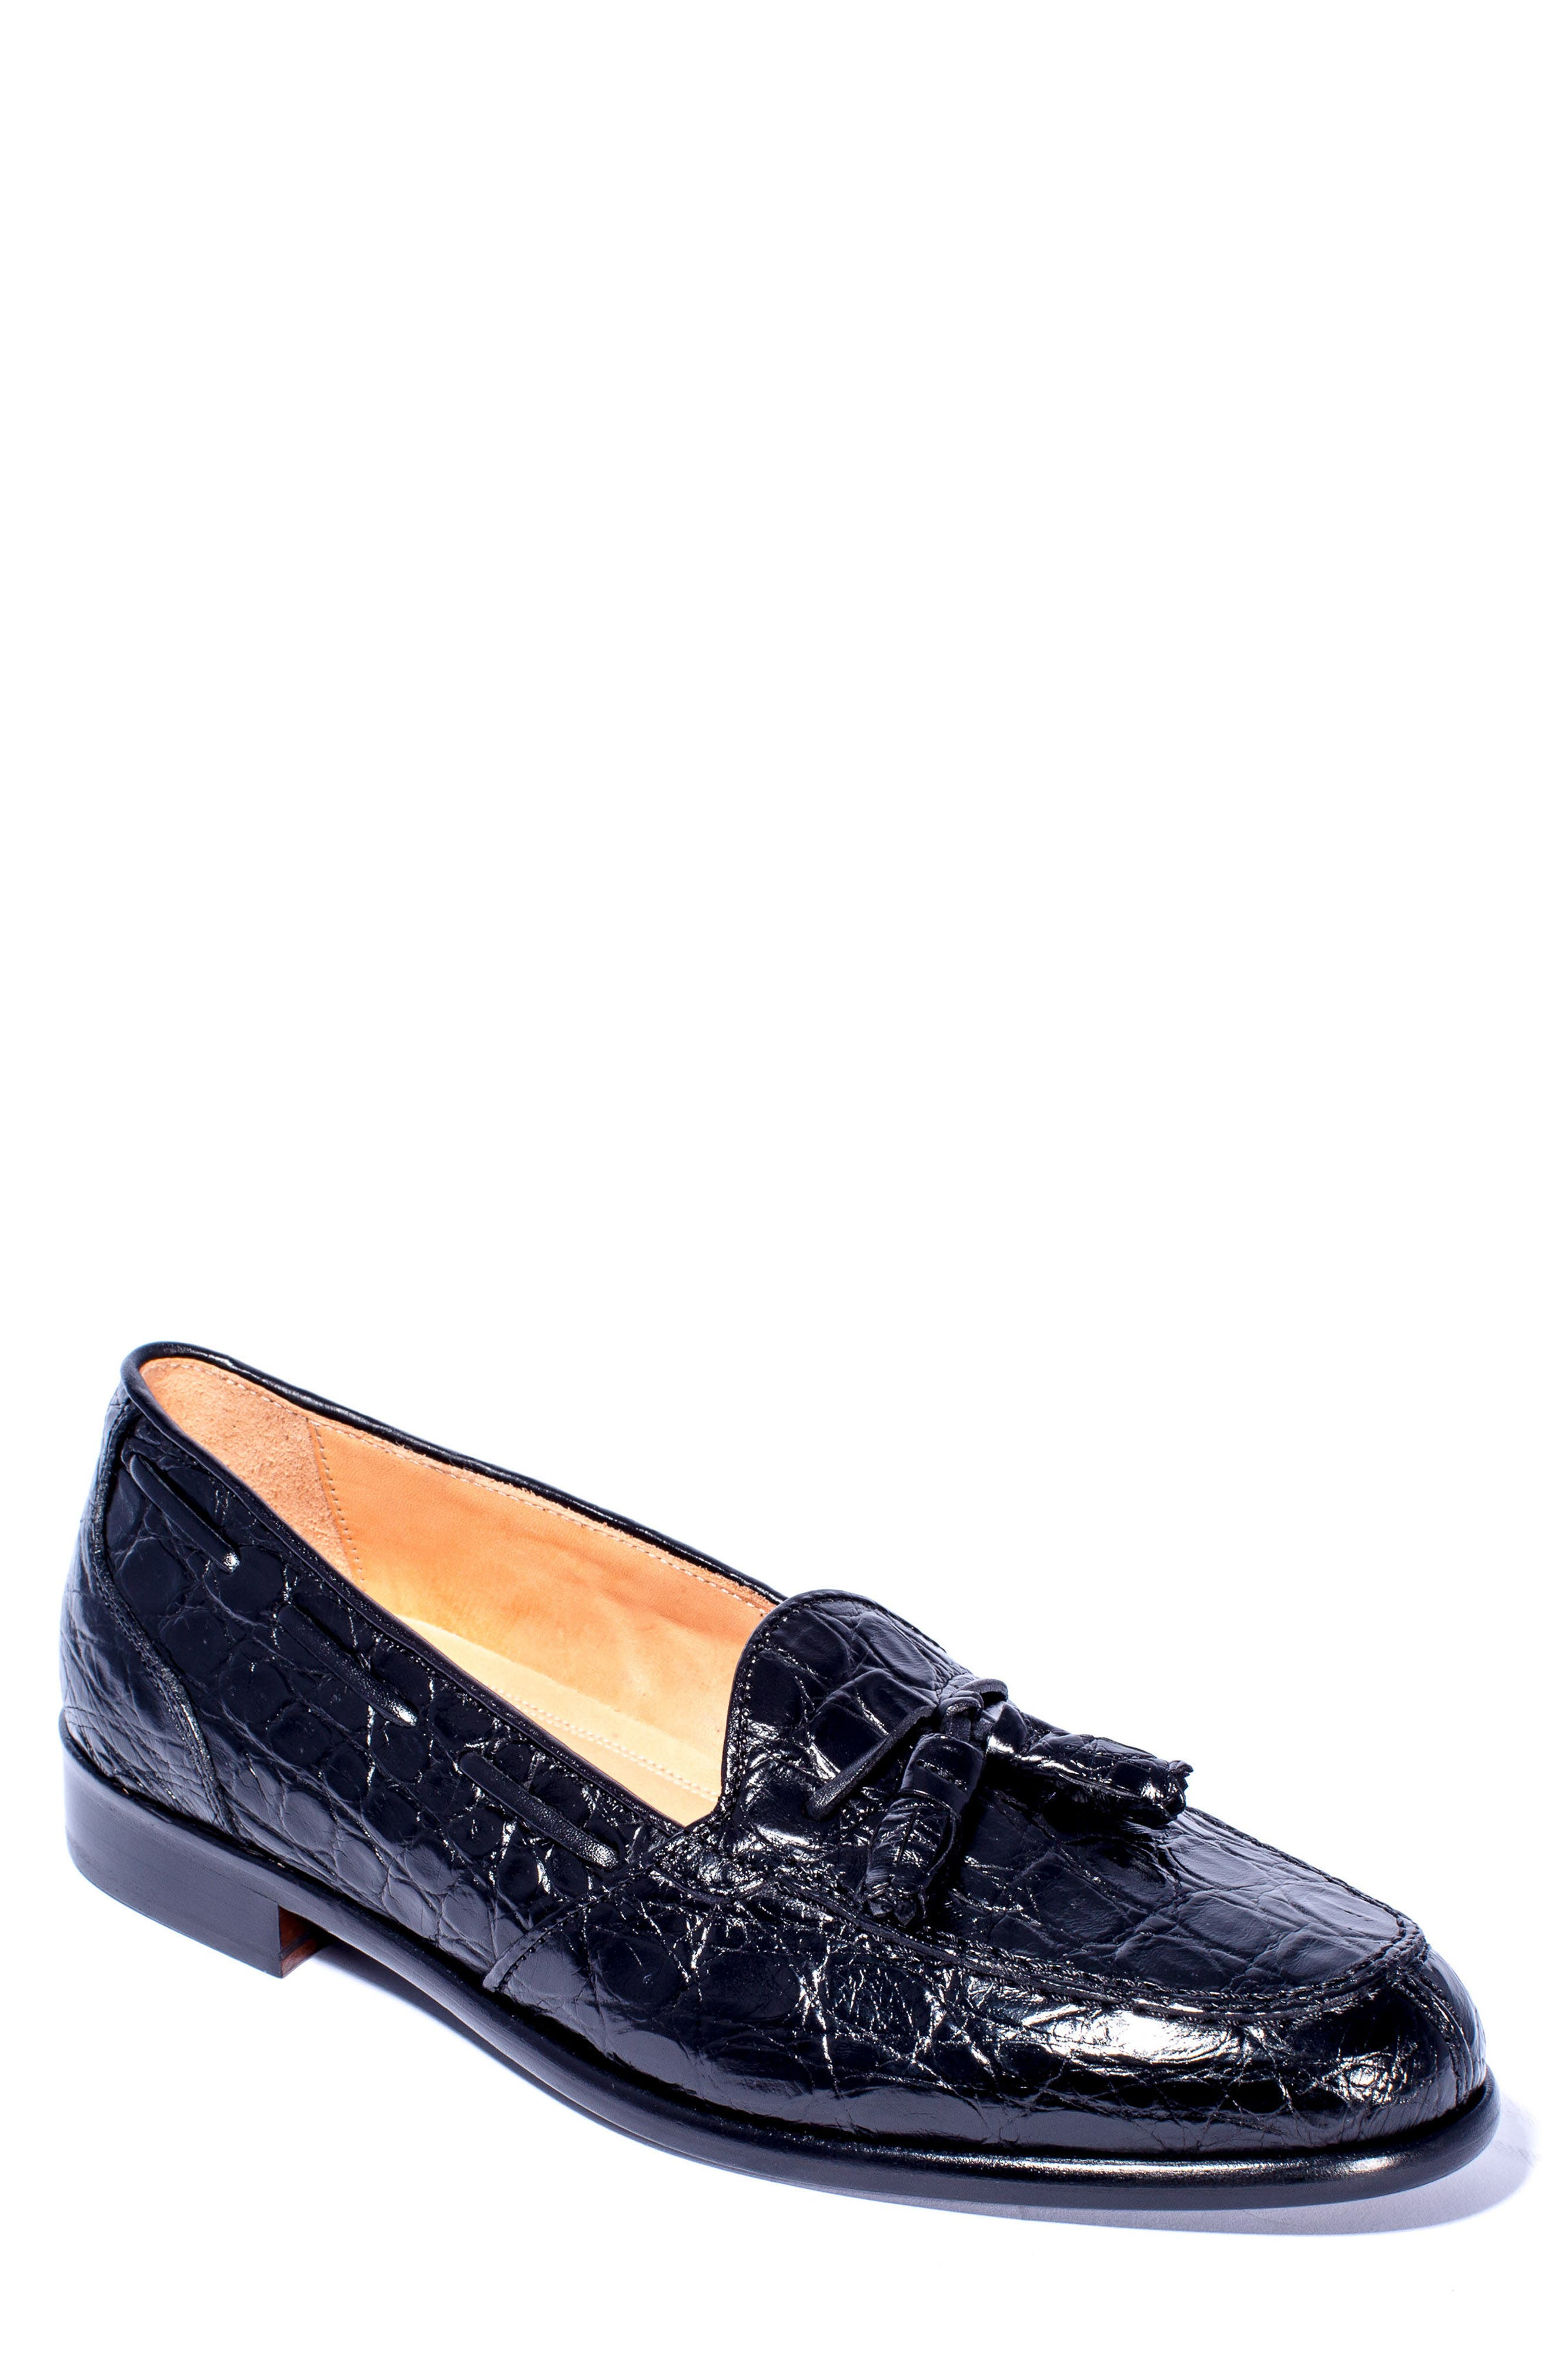 Franco Tassel Exotic Leather Loafer,                             Main thumbnail 1, color,                             001